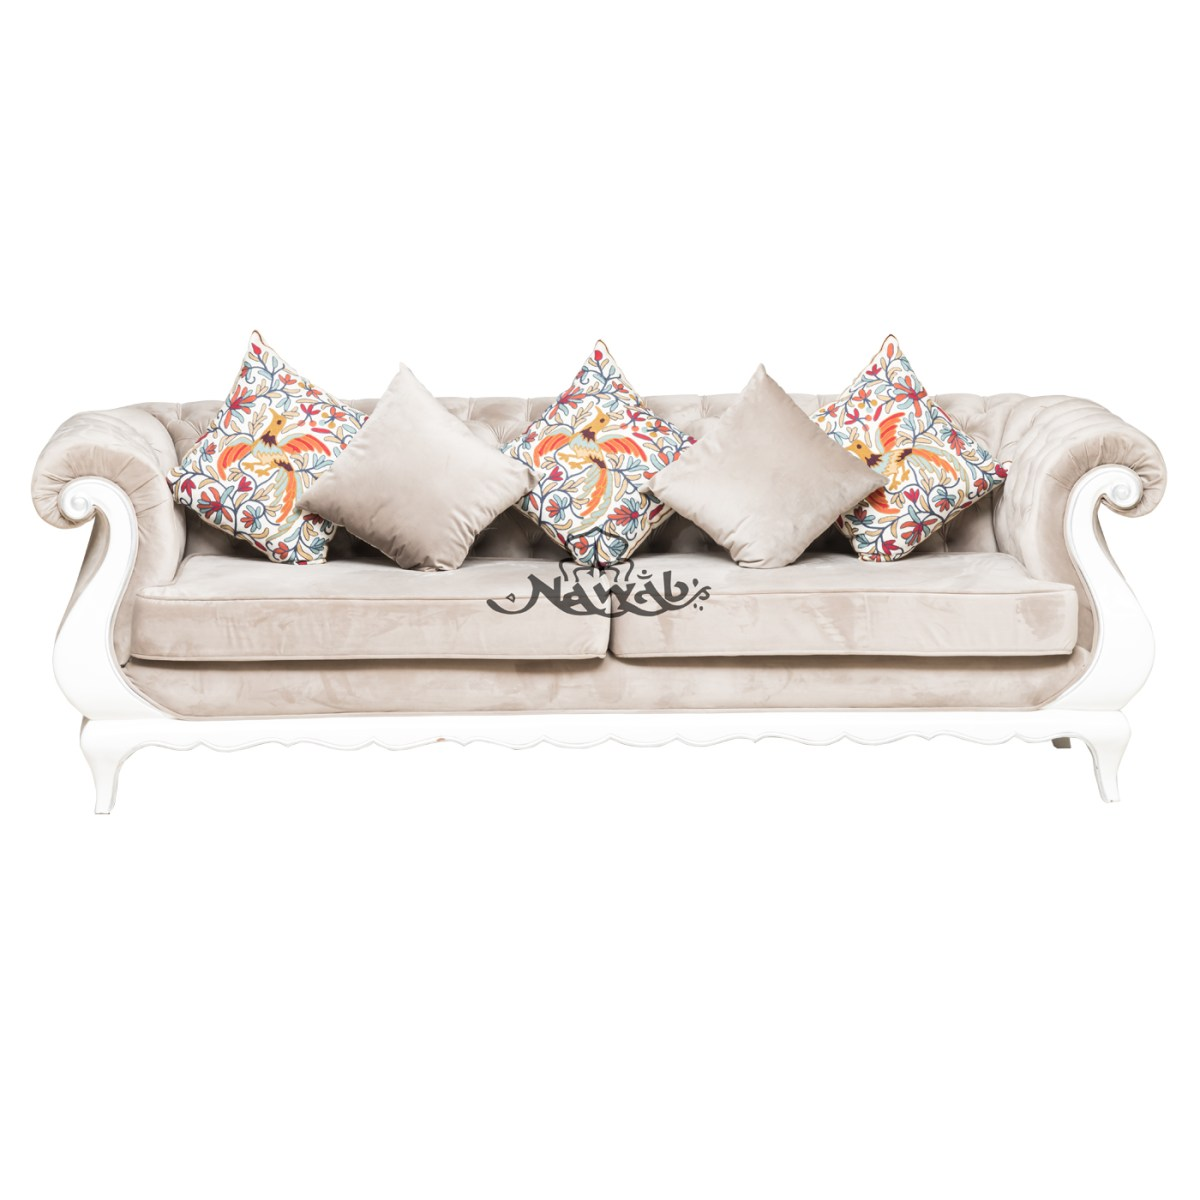 3-seater-teak-wood-frame-hand-carved-velvet-upholstery-white-and-silver-high-gloss-polish-even-at-borders-ethnic-embroidery-cushions